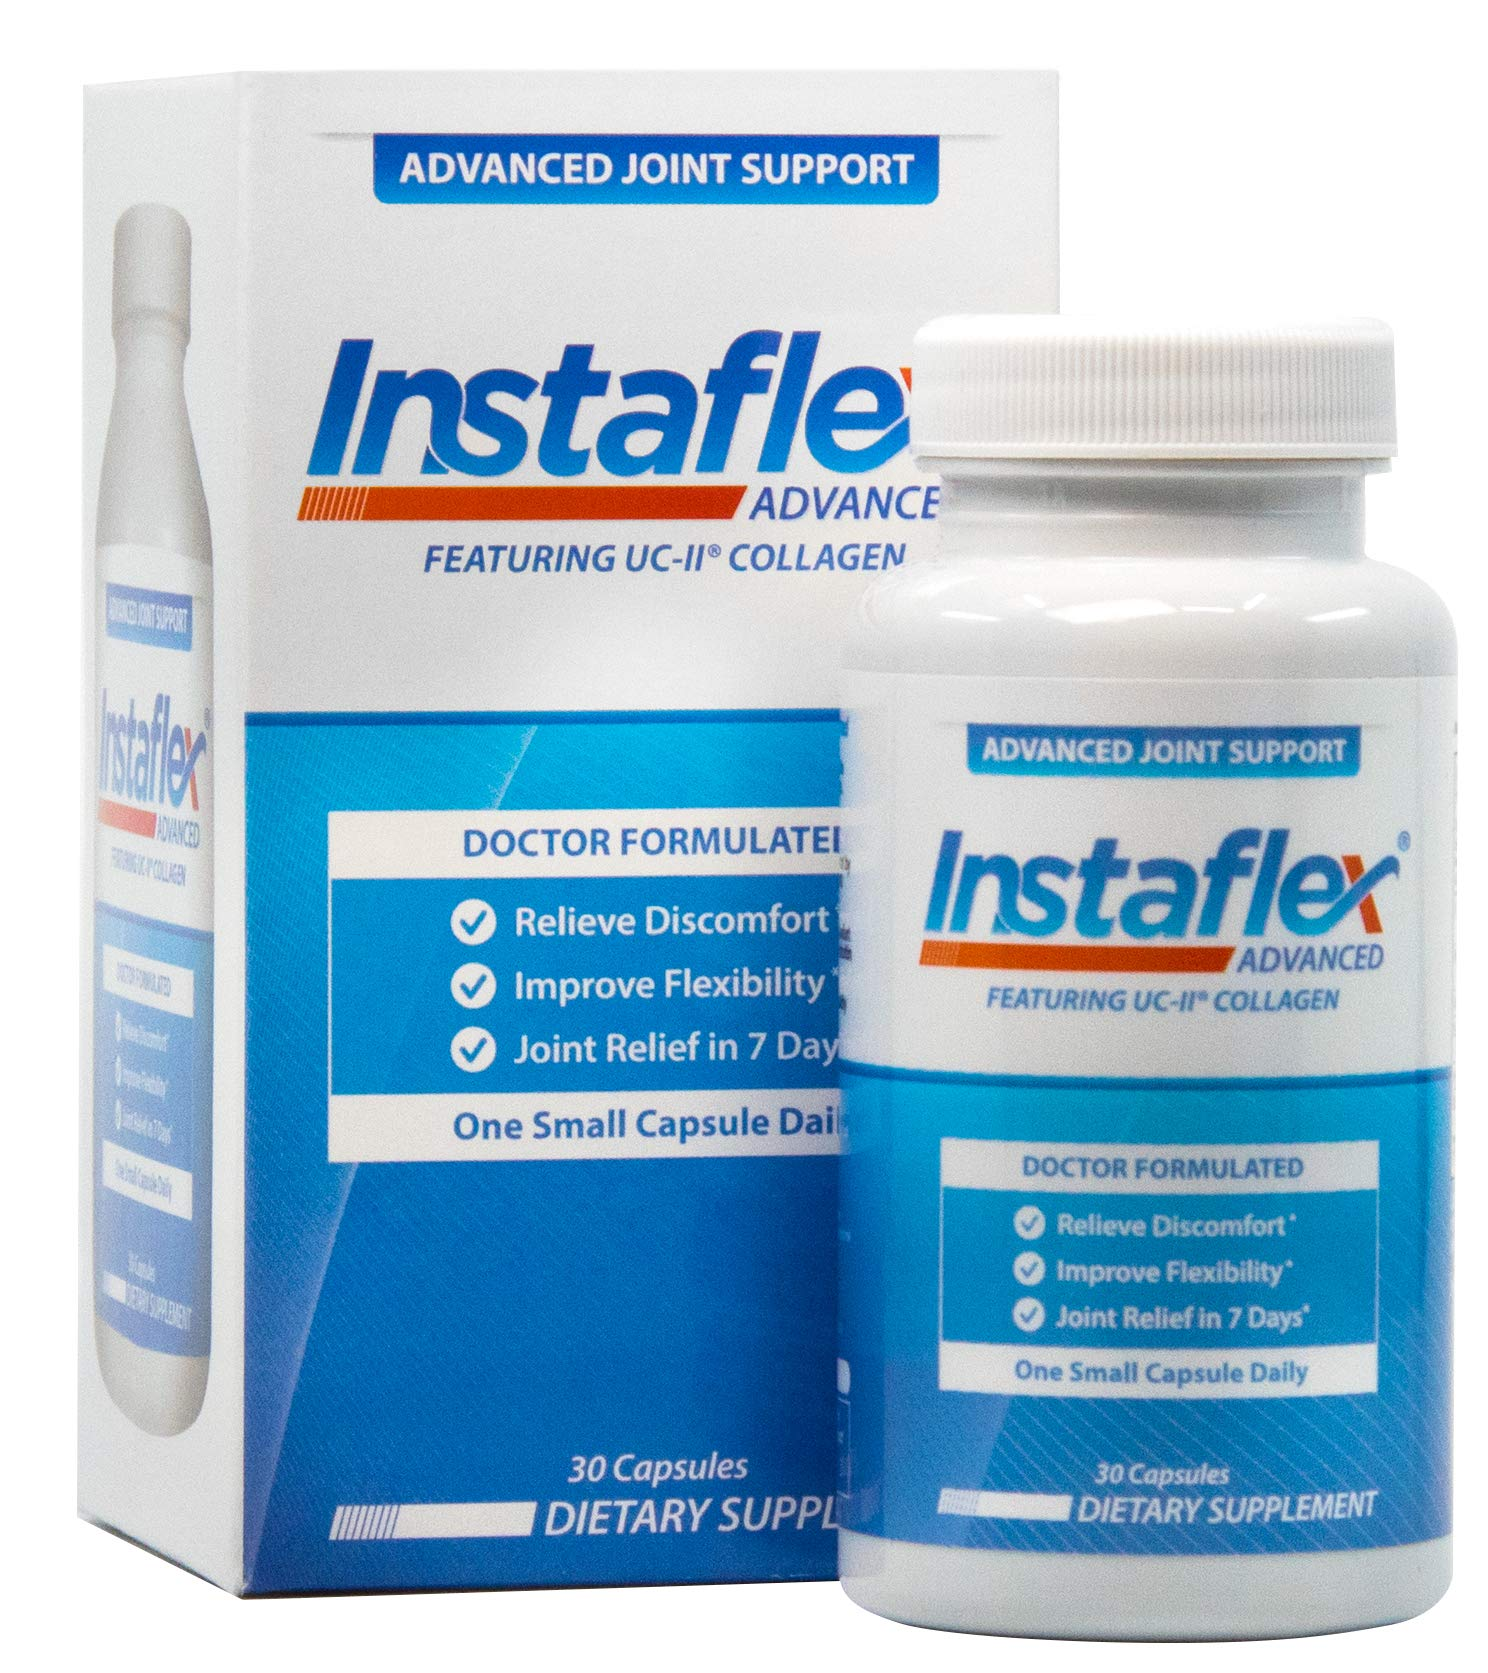 Instaflex Advanced Joint Support - Doctor Formulated Joint Relief Supplement, Featuring UC-II Collagen & 5 Other Joint Discomfort Fighting Ingredients - 30 Count by Instaflex